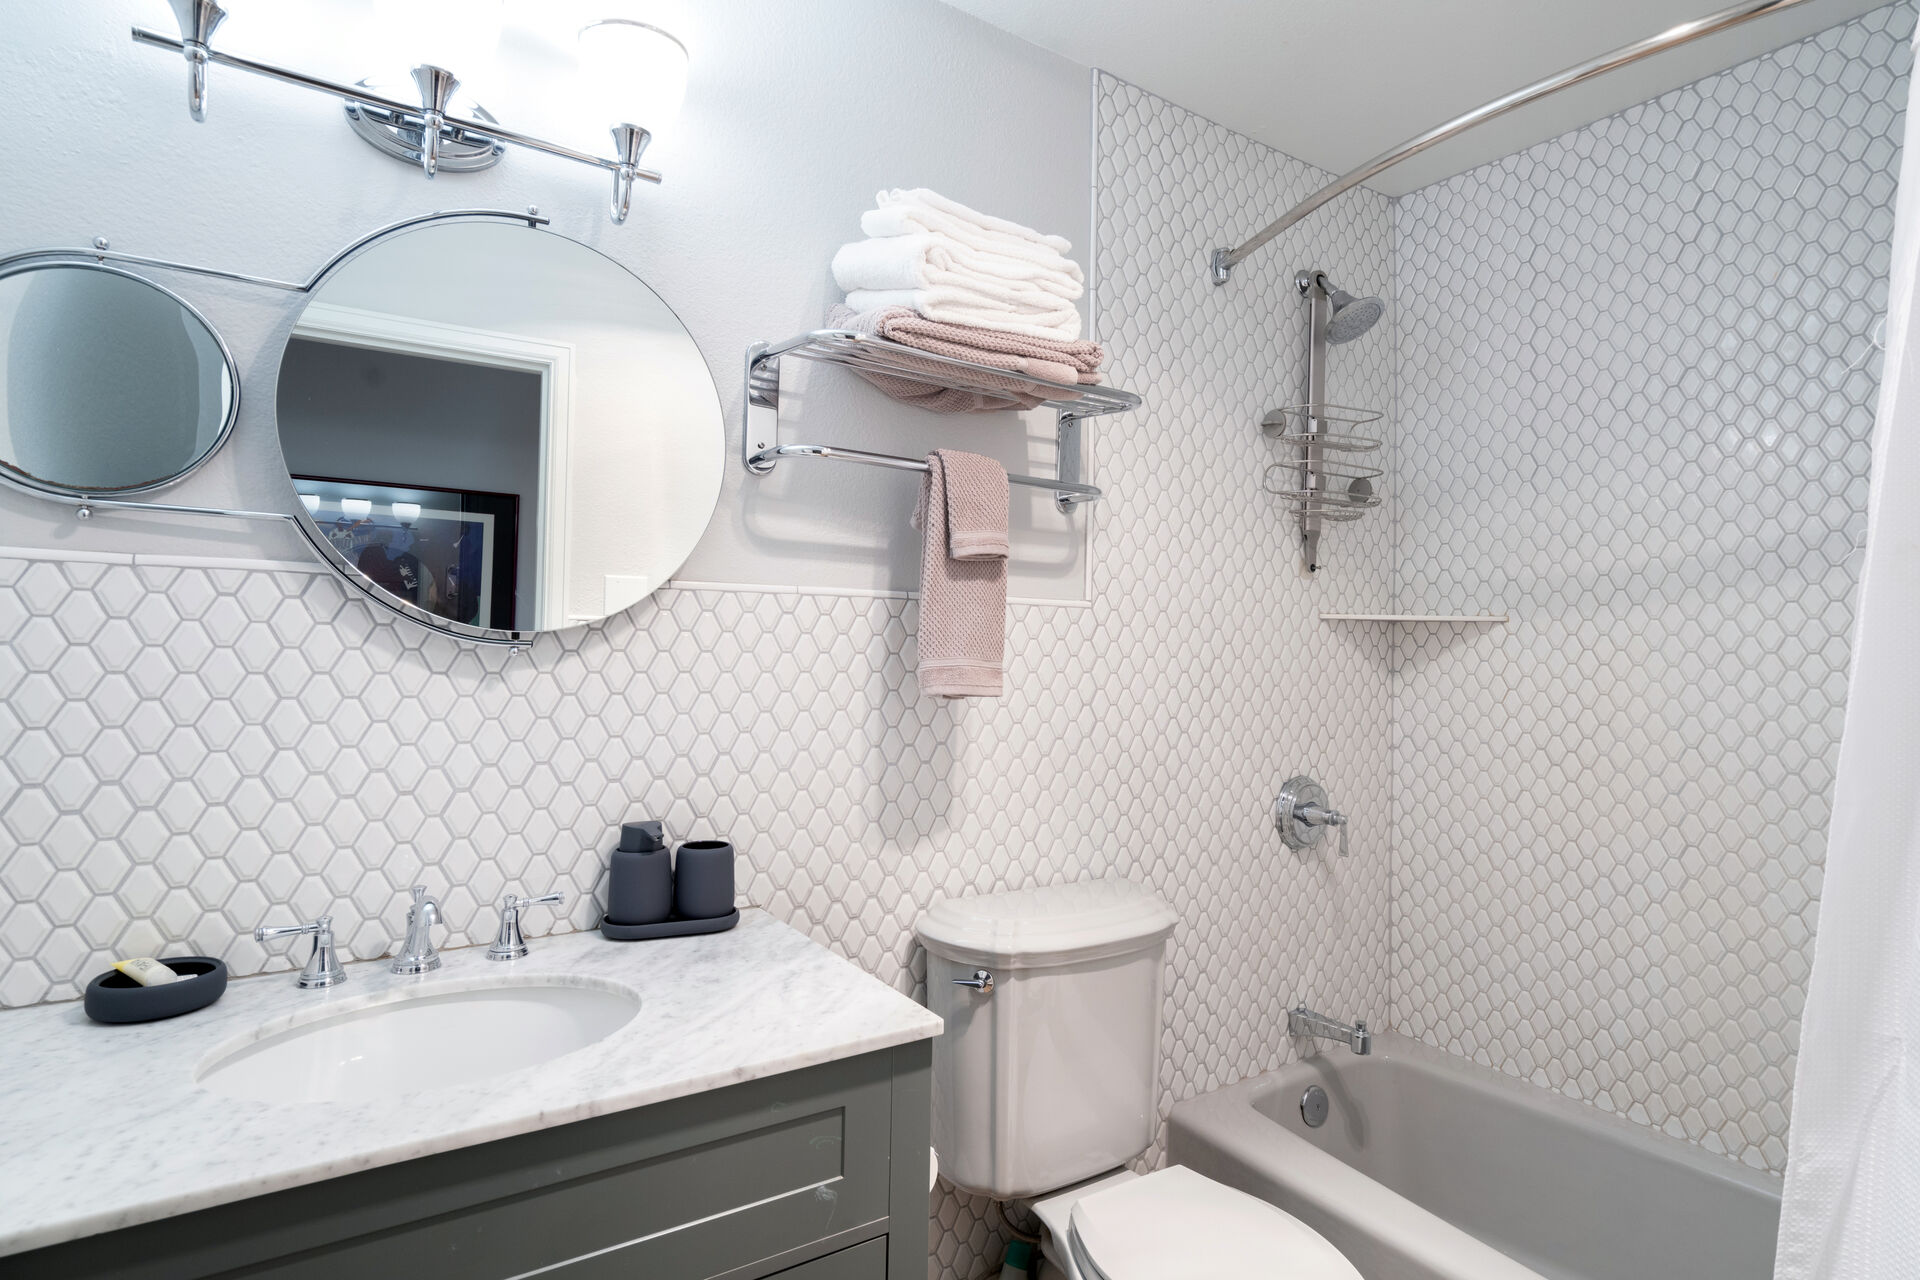 A shower/tub, a sink and towels